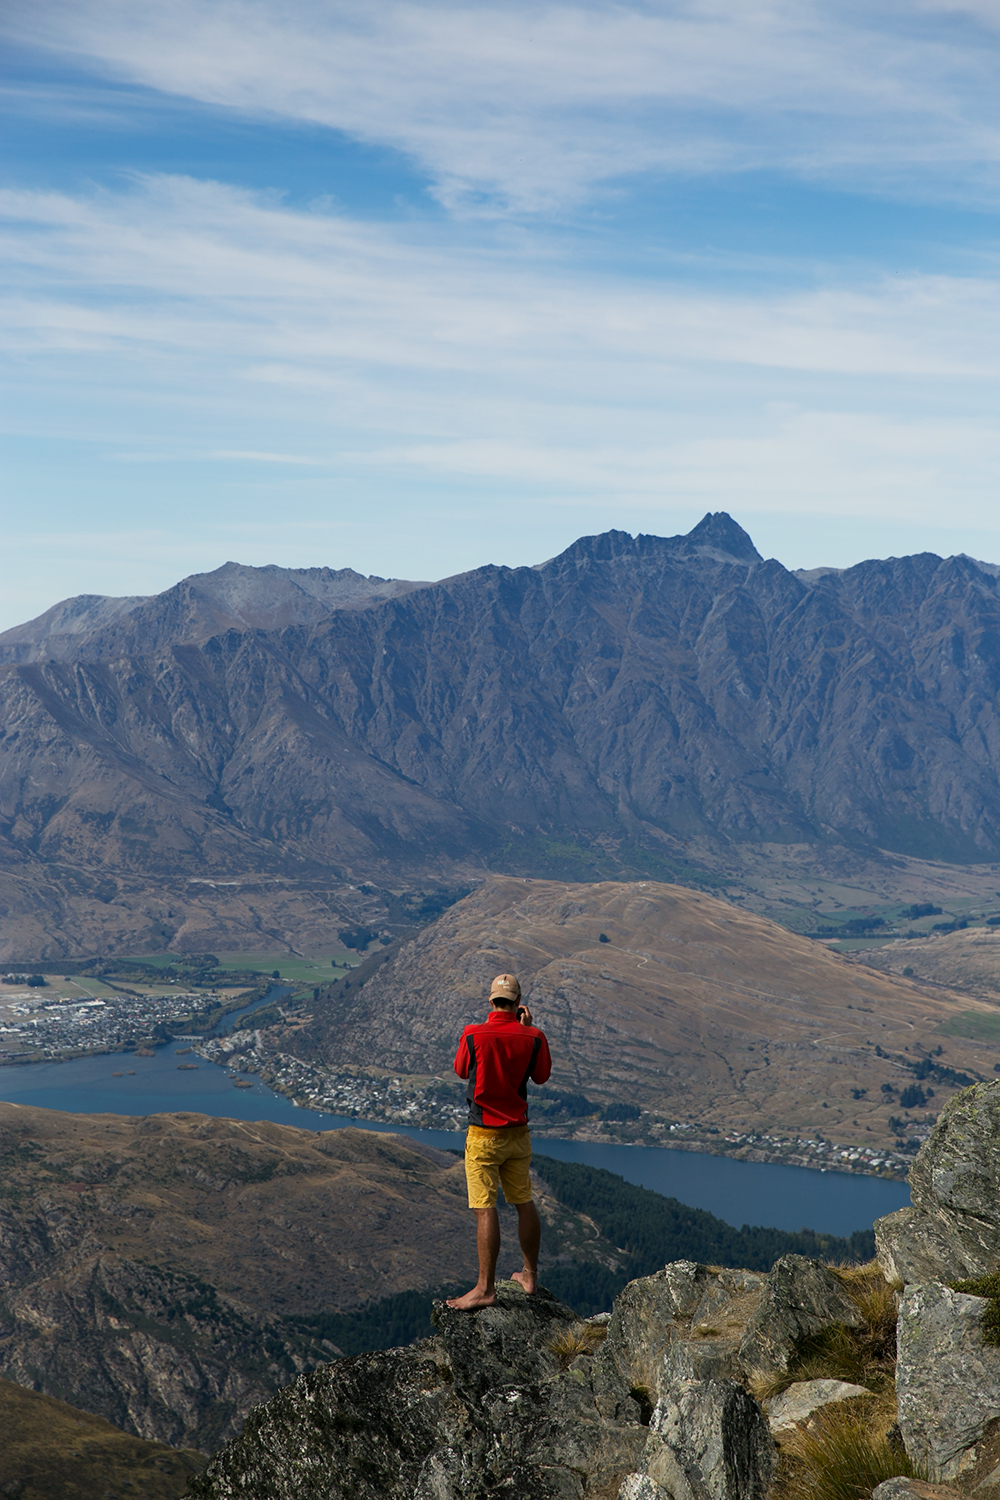 A hiker takes in the view of Queenstown from Ben Lomond.